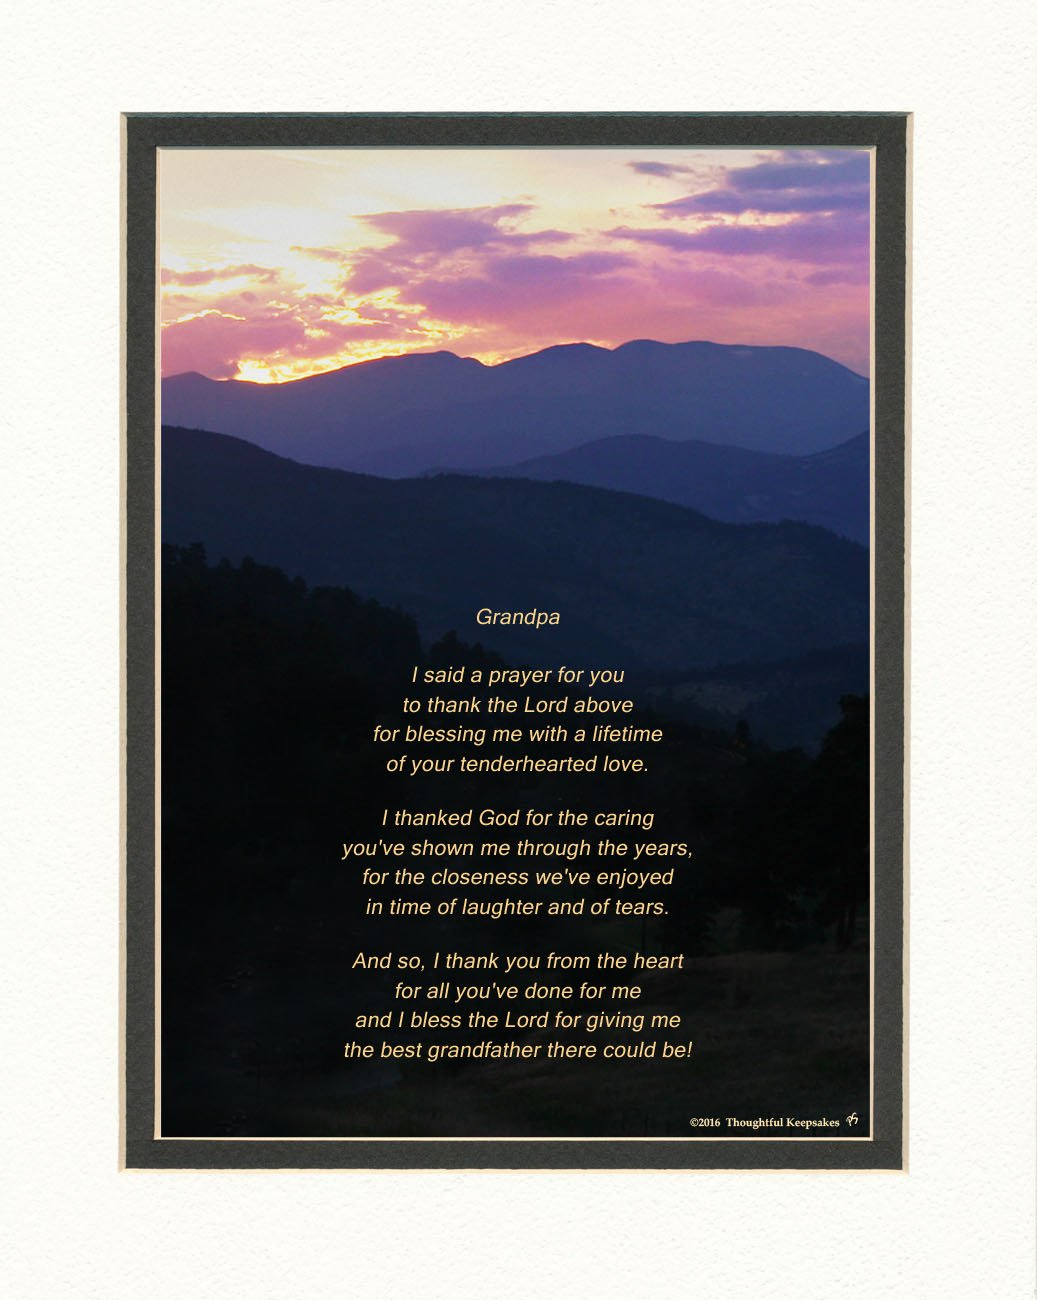 Grandpa Gift with ''Thank You Prayer for Best Grandfather'' Poem. Mts Sunset Photo, 8x10 Double Matted. Special Grandparents Day, Birthday, Christmas Gift for Granddad